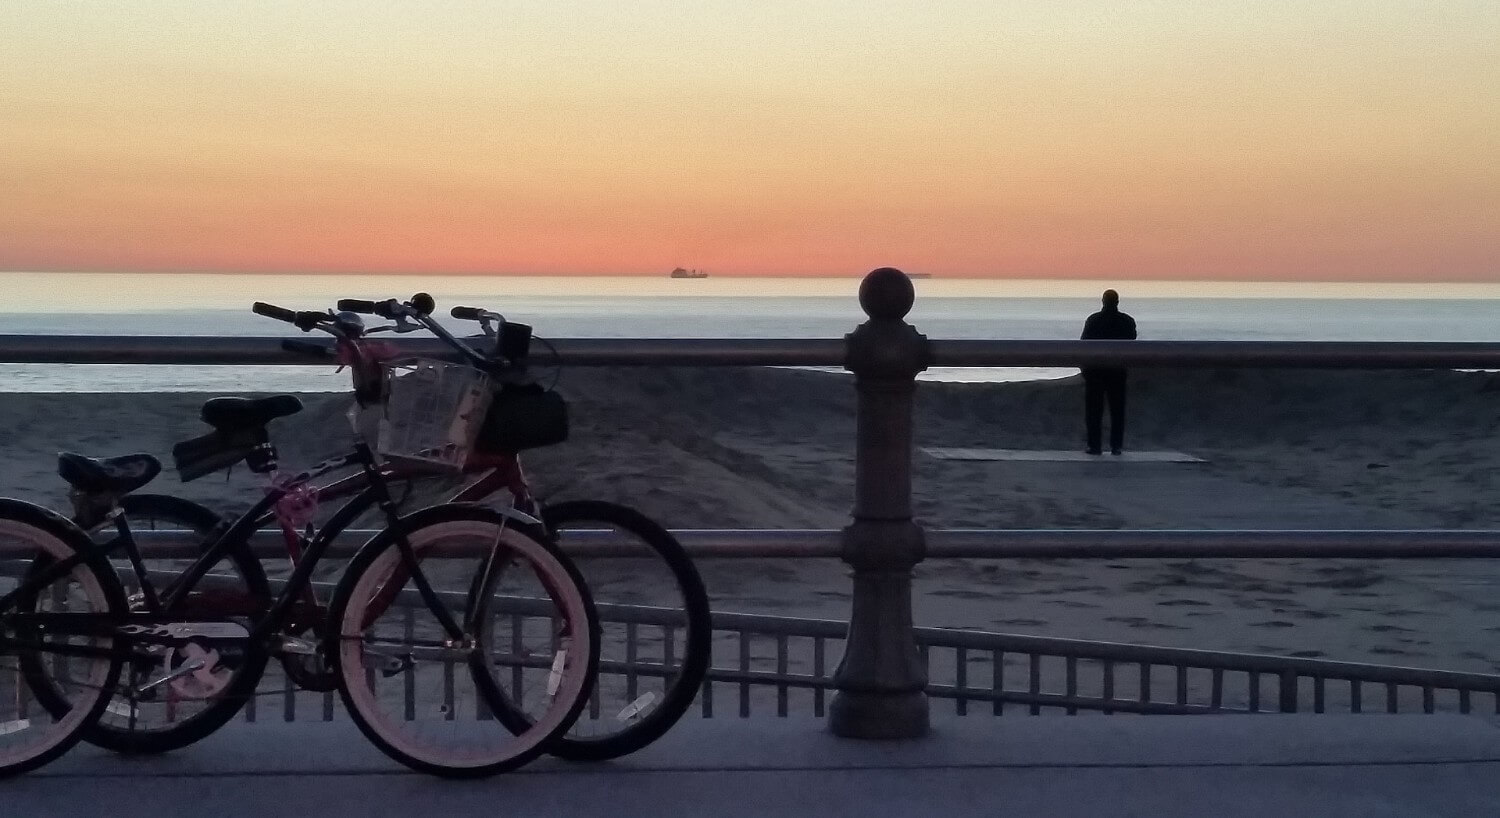 Two bikes on a boardwalk overlooking the beach at sunset.